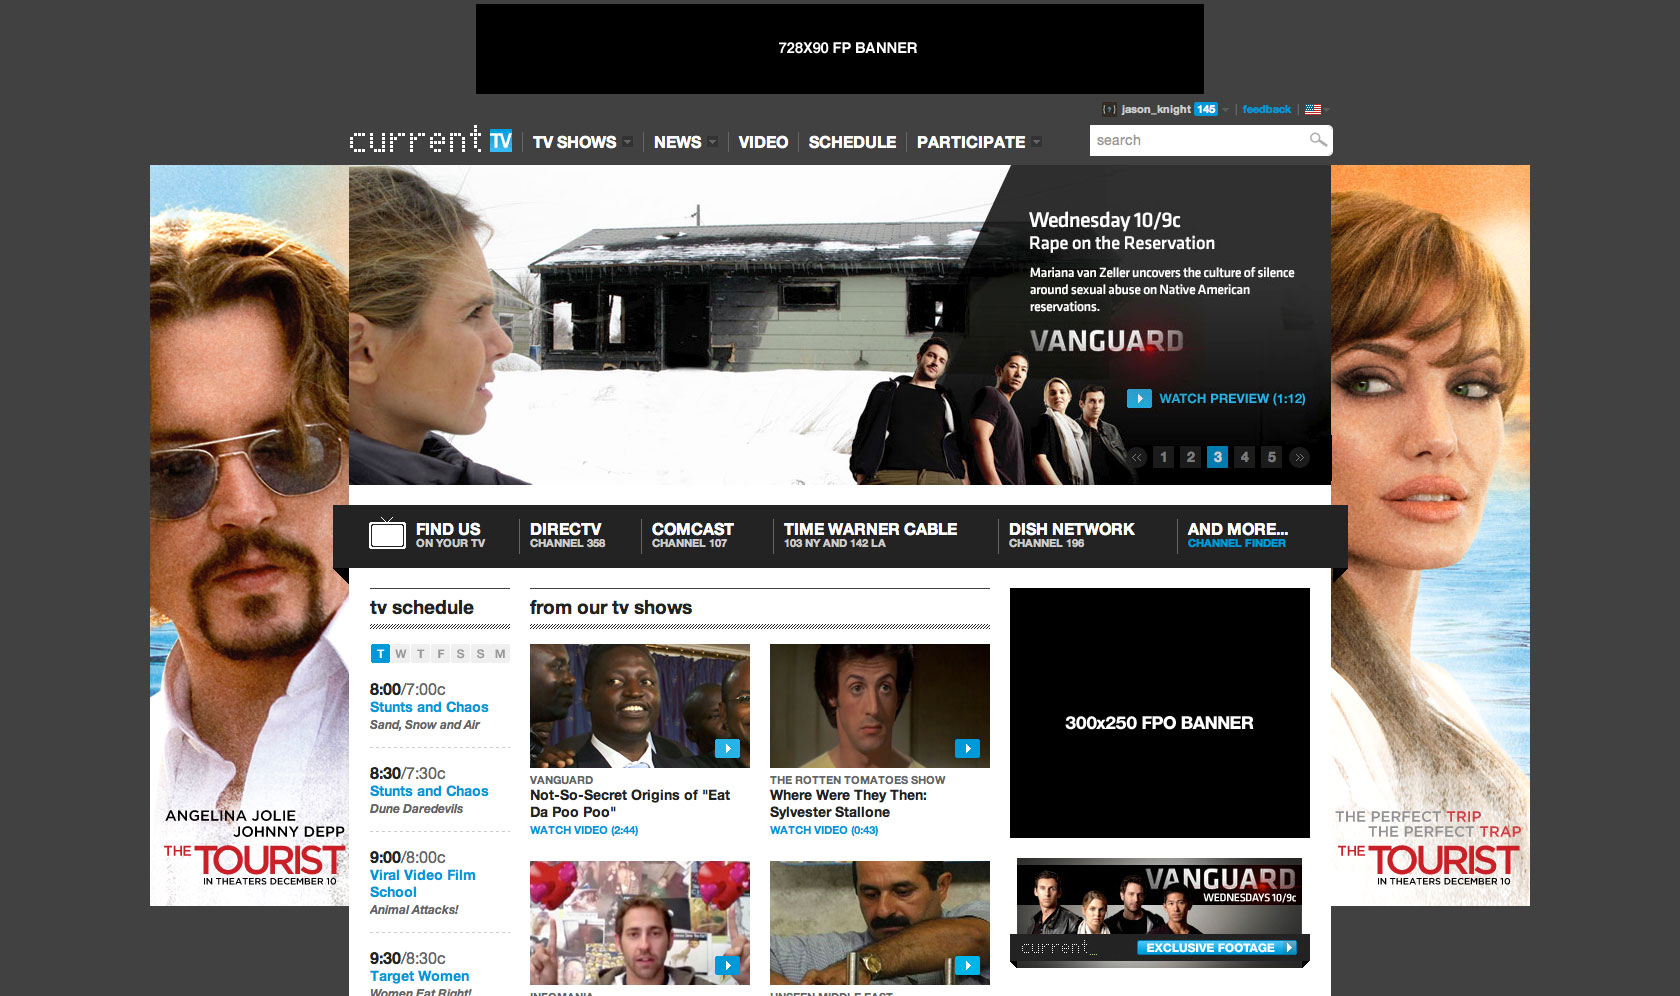 The Tourist Homepage Takeover